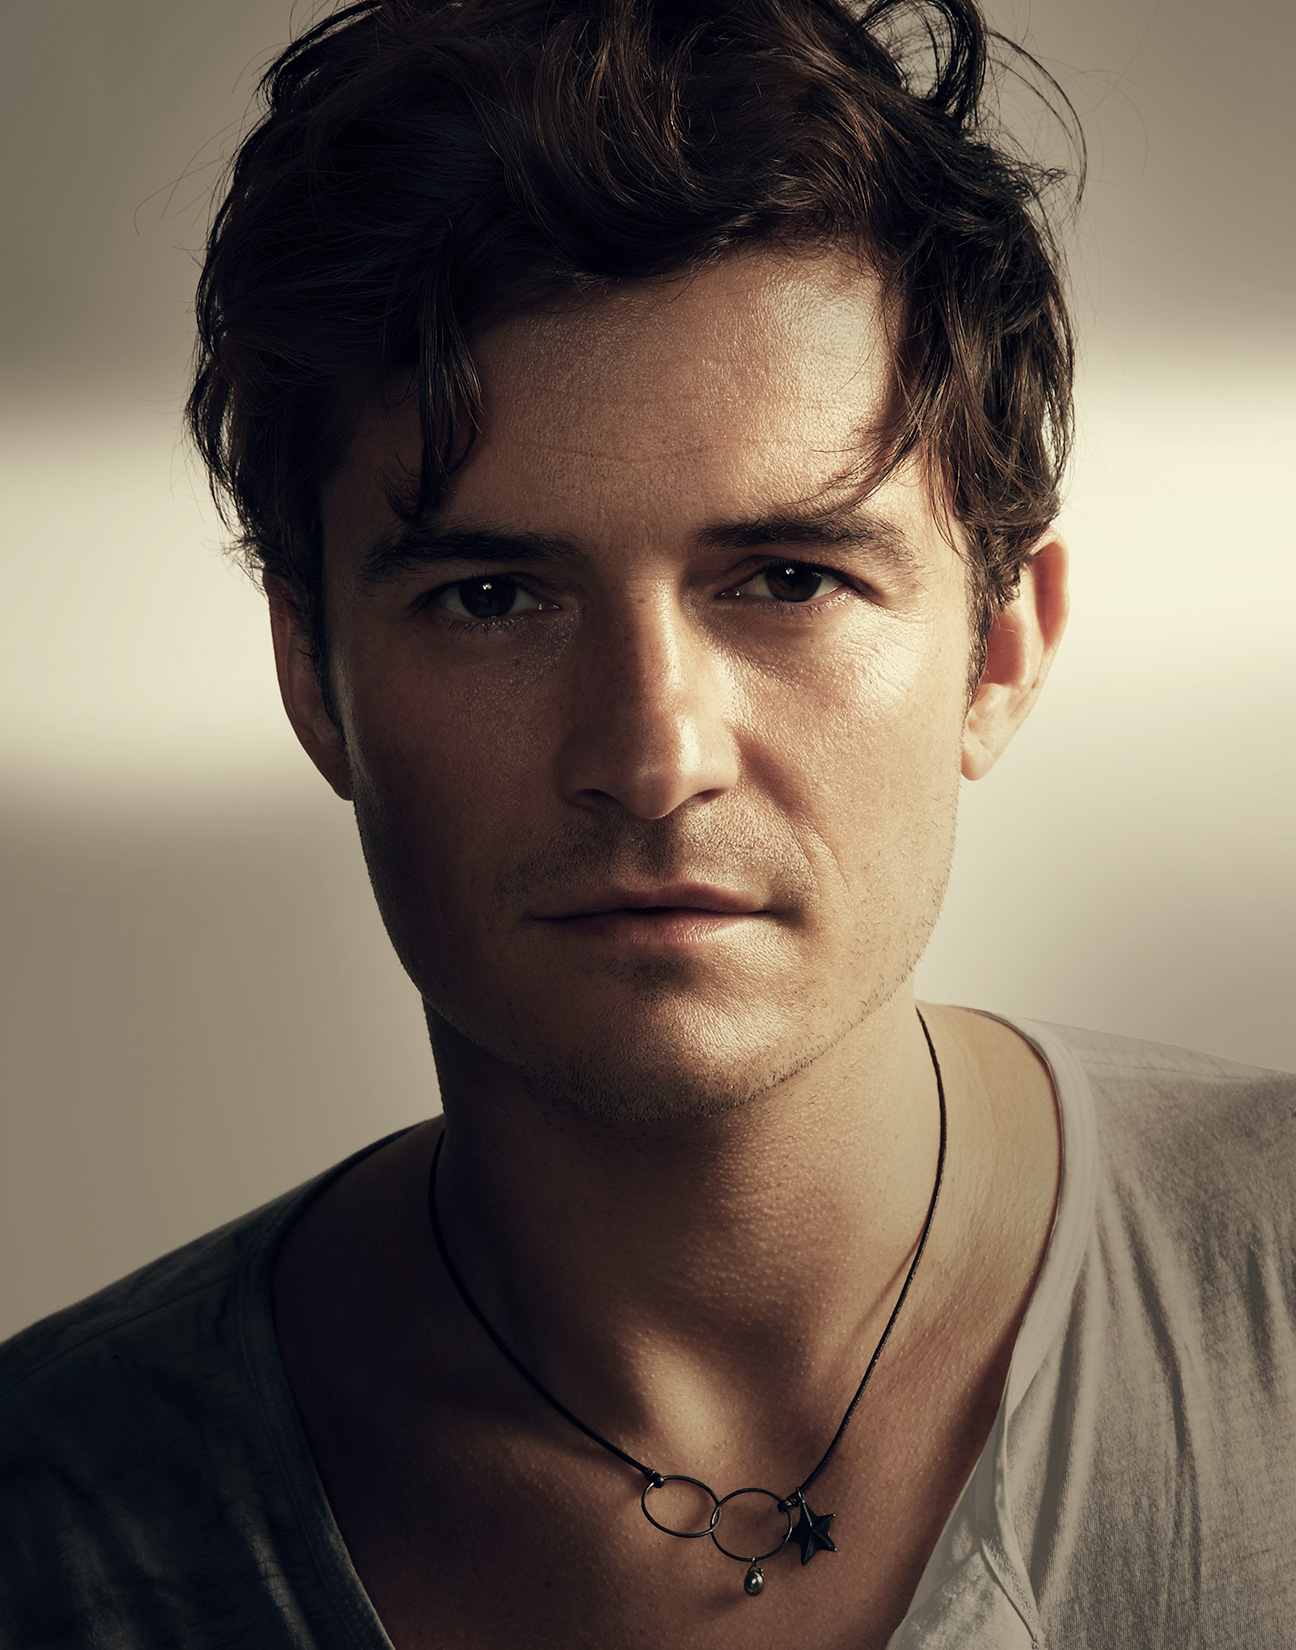 Orlando-Bloom-Portrait-by-Robert-Ascroft.jpg